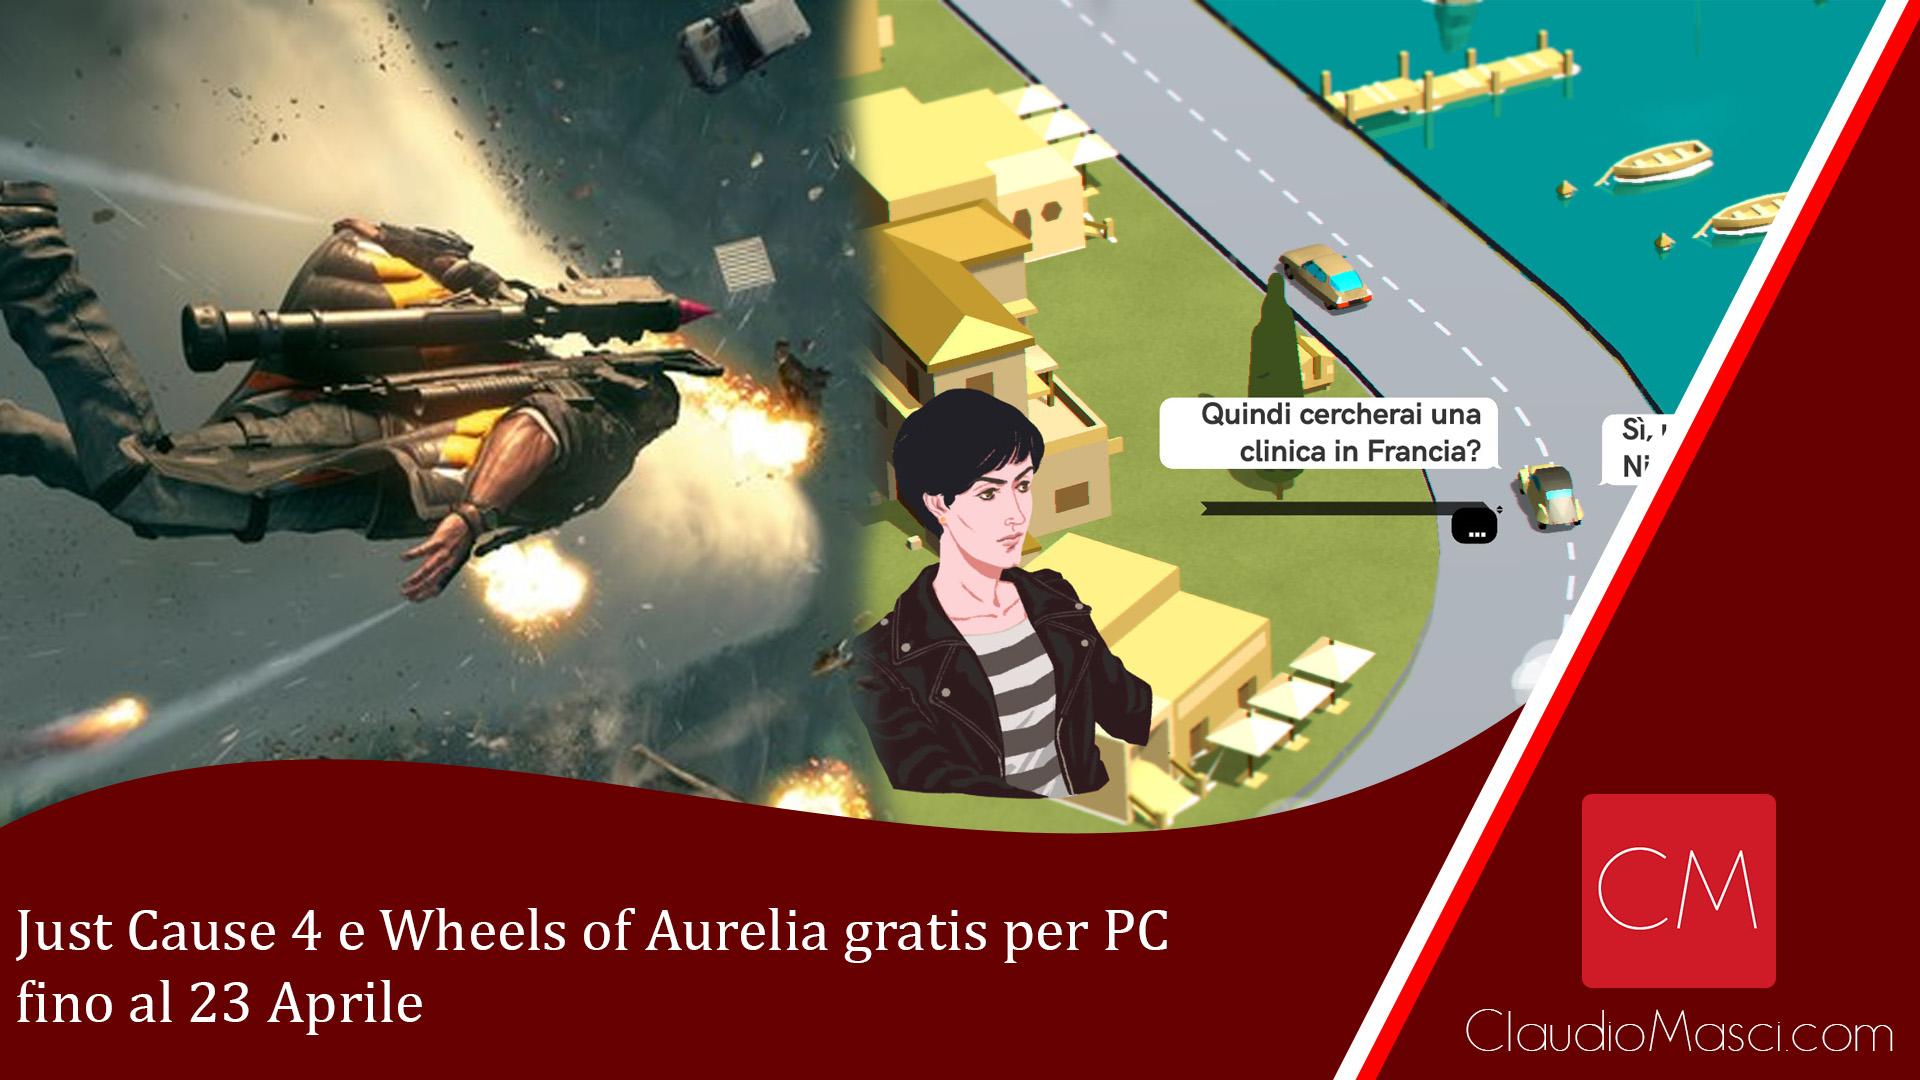 Just Cause 4 e Wheels of Aurelia gratis per PC fino al 23 Aprile